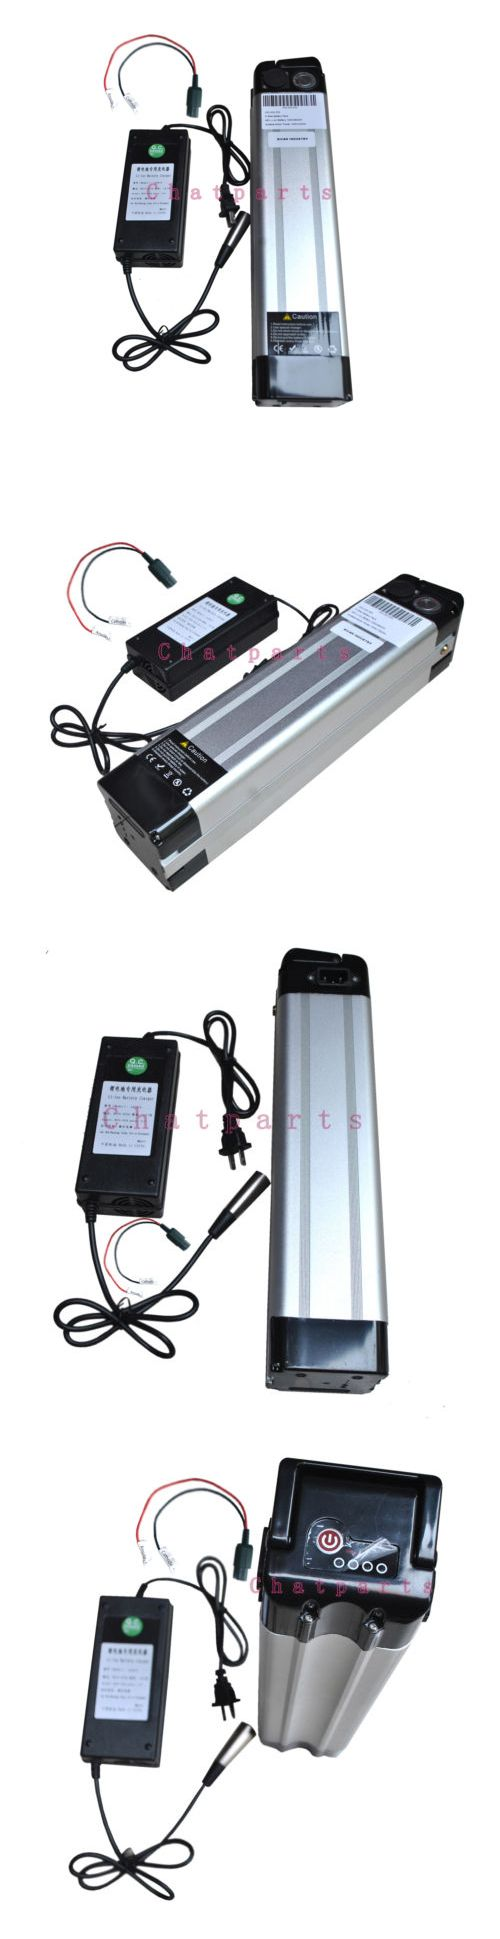 Other Multipurpose Batteries: E-Bike 48V 10Ah Li-Ion Li-Battery Rechargeable Battery Pack Electric Bicycle /W BUY IT NOW ONLY: $259.0